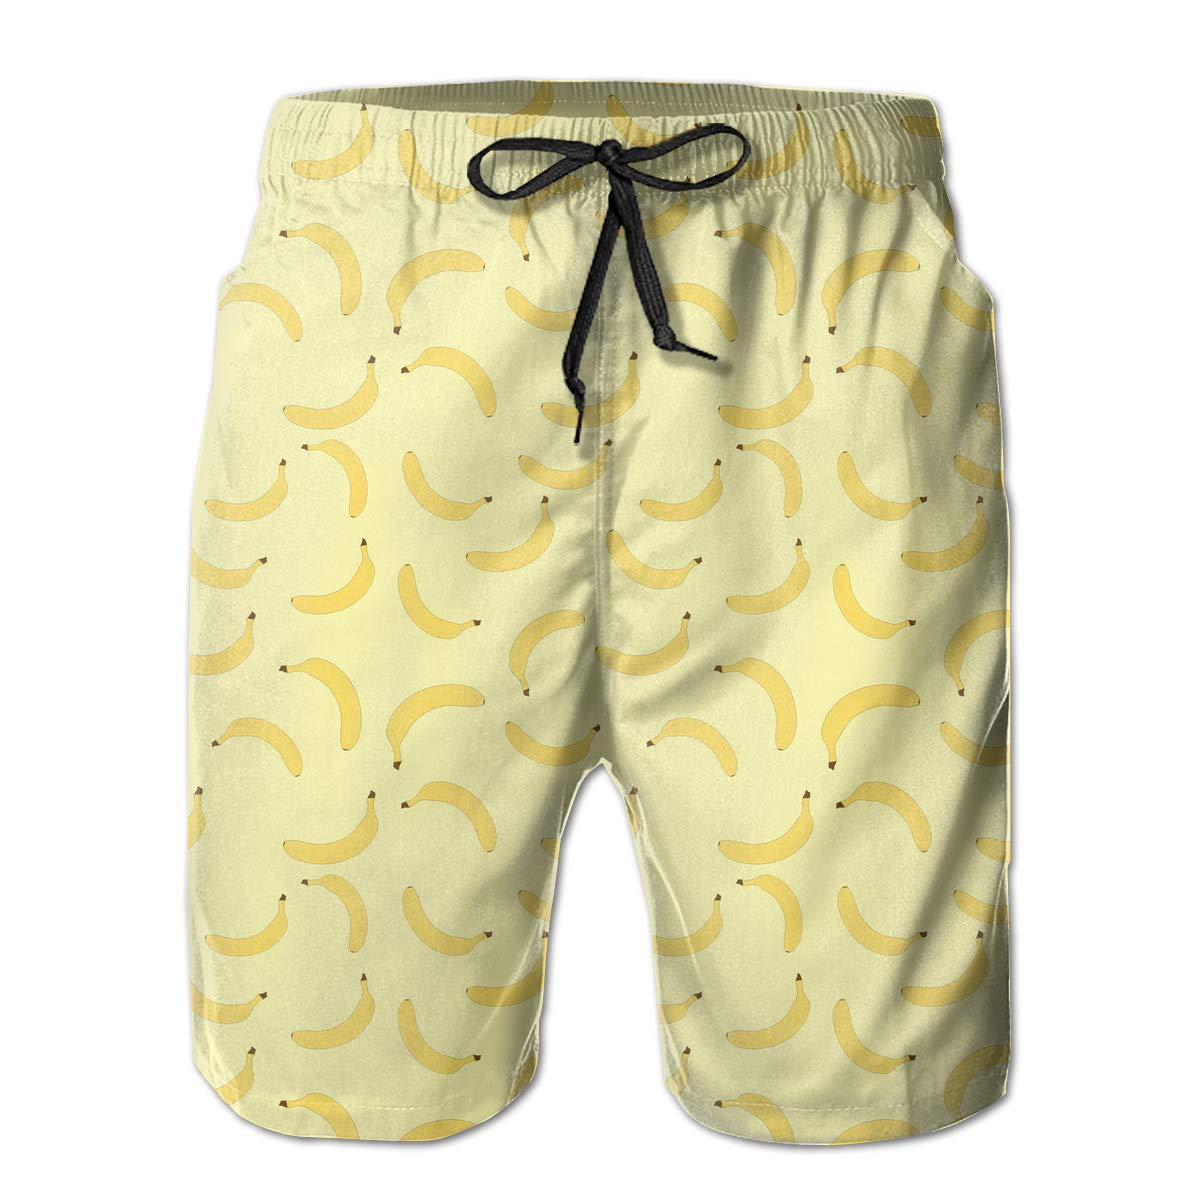 Banana As Background Pattern Mens Lightweight Beach Shorts Sports Runnning Pockets Beachwear